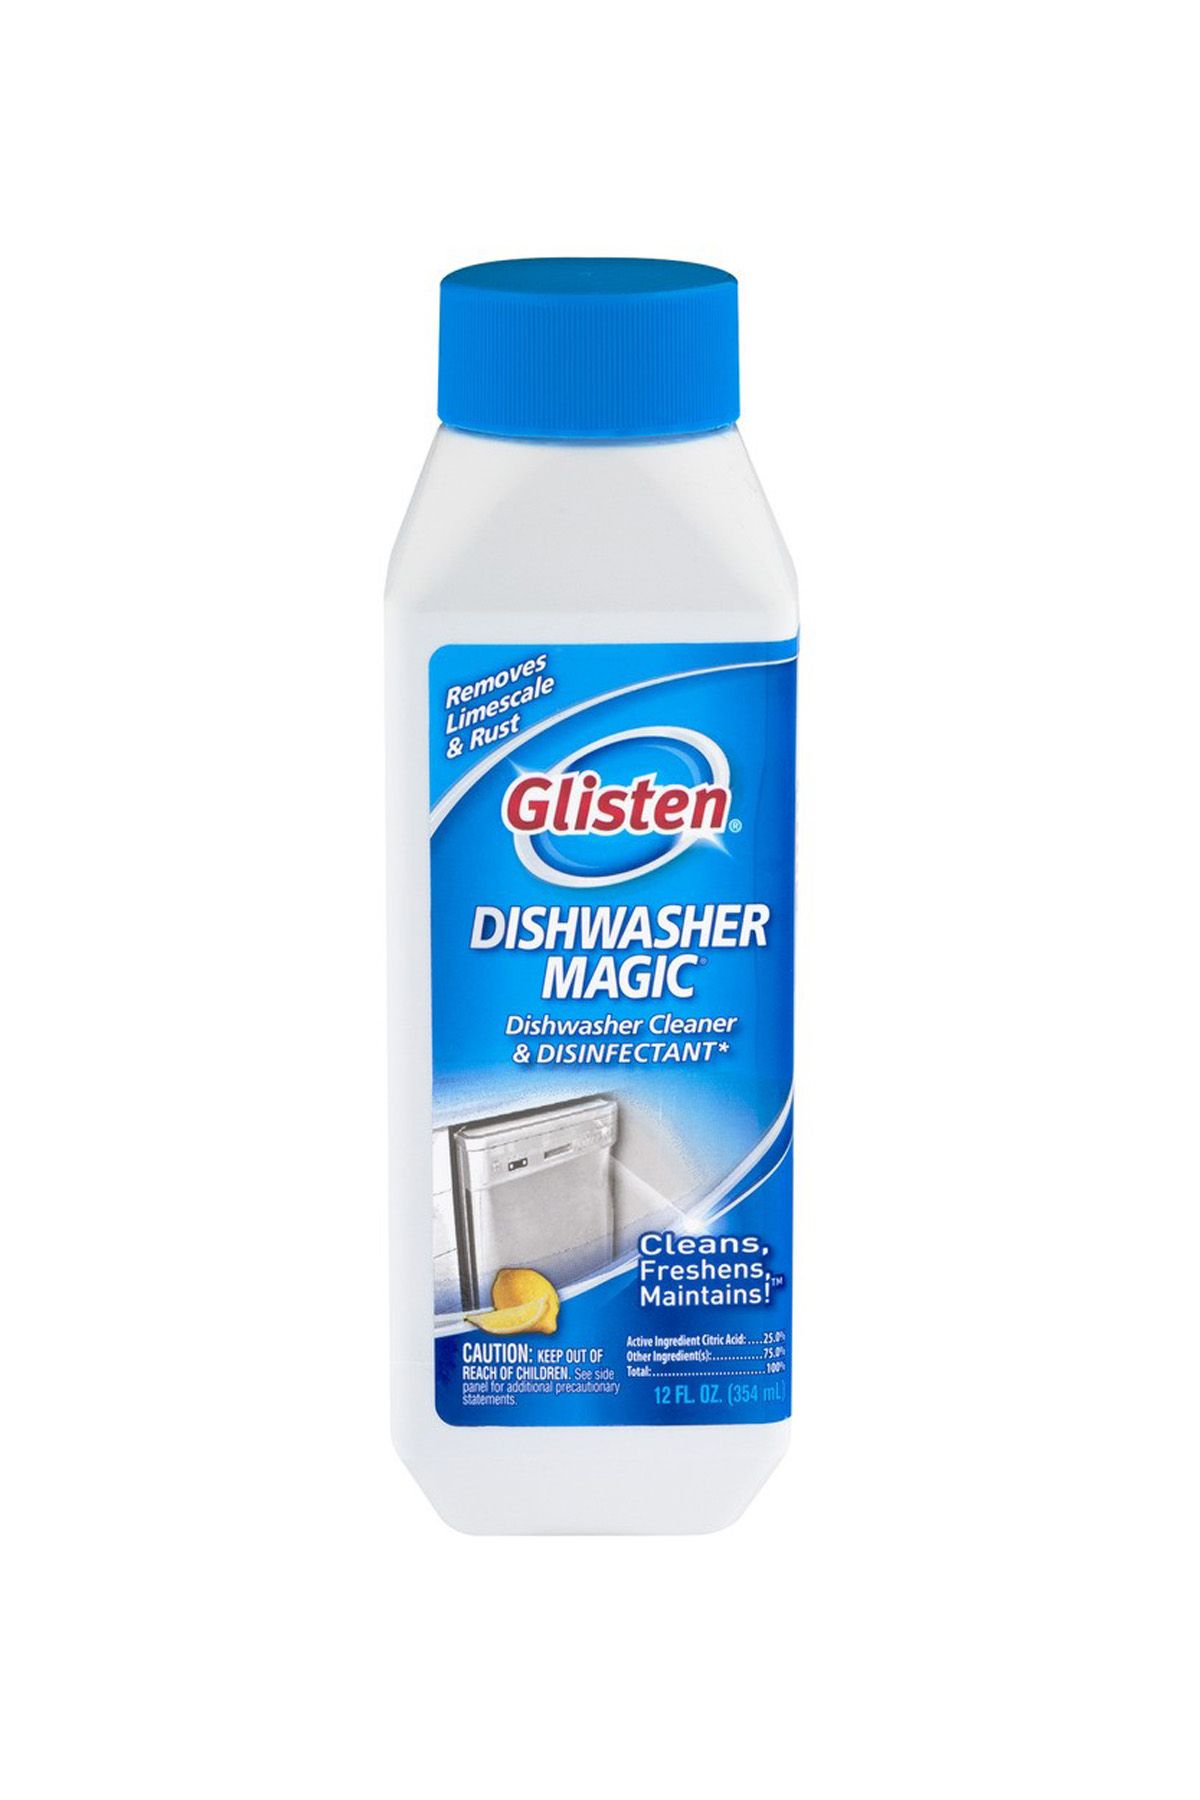 Best Dishwasher Cleaner - Top-Rated Dishwasher Cleaning Products